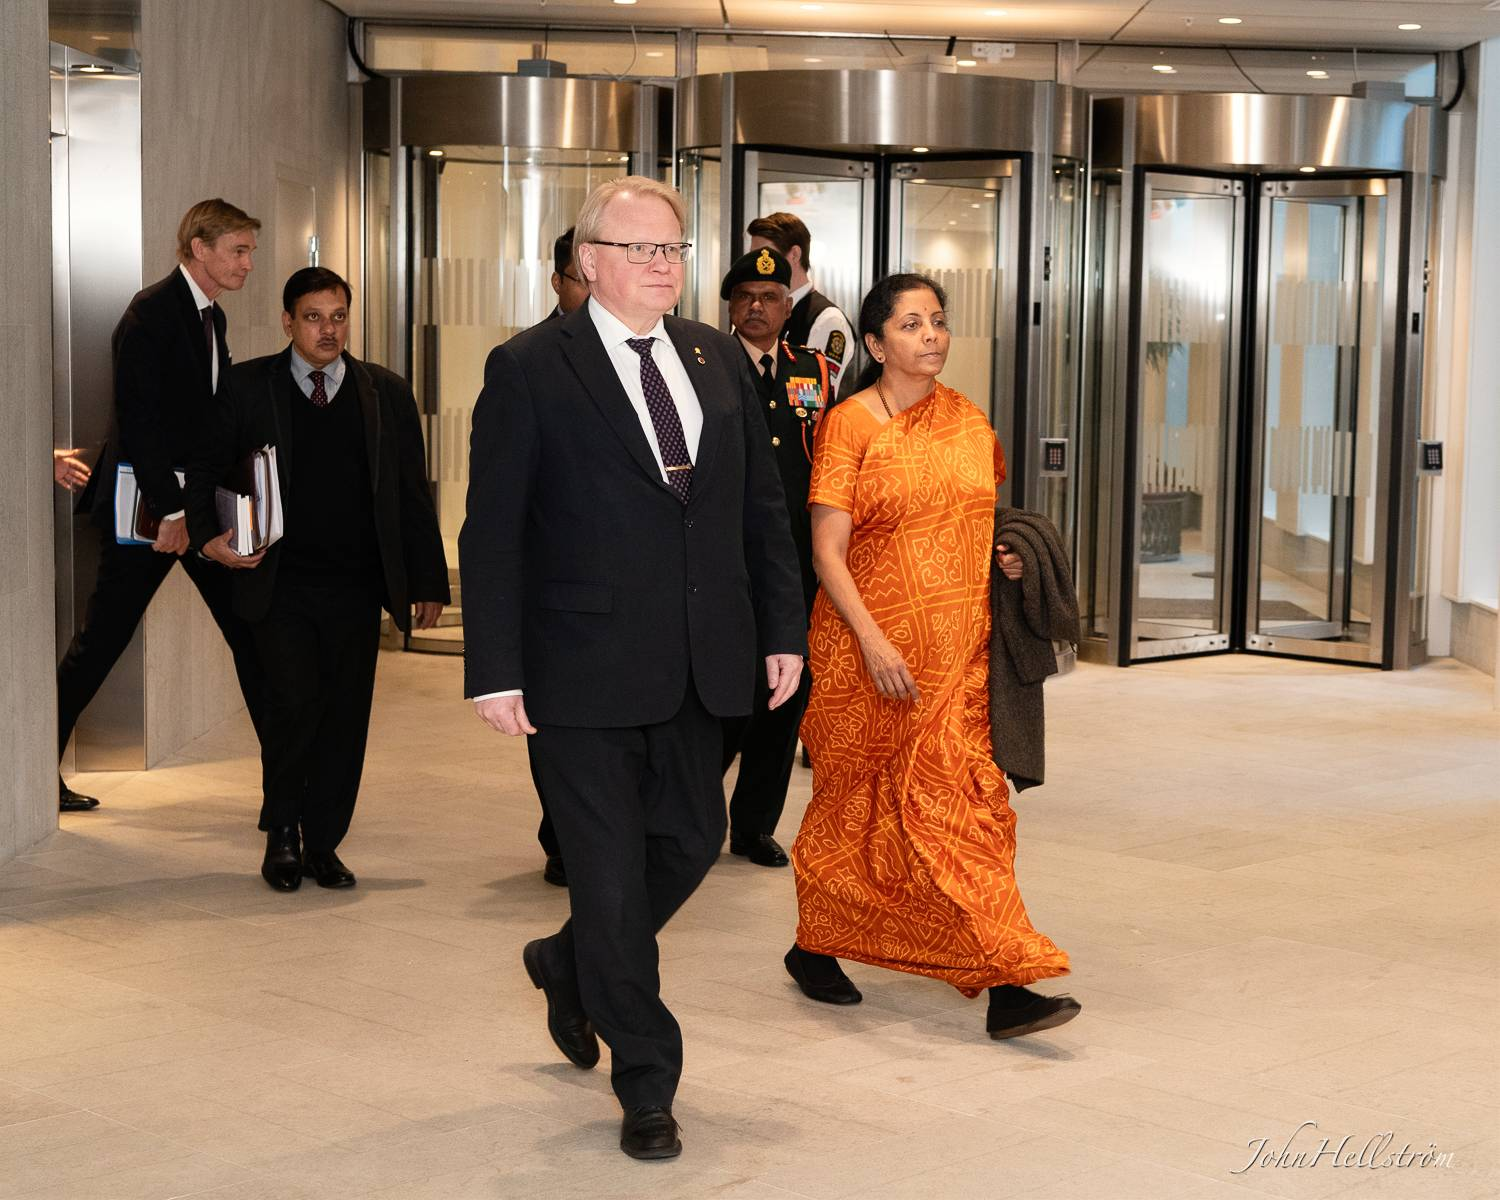 Embassy-of-India-Defence-Minister-Sweden-55.jpg